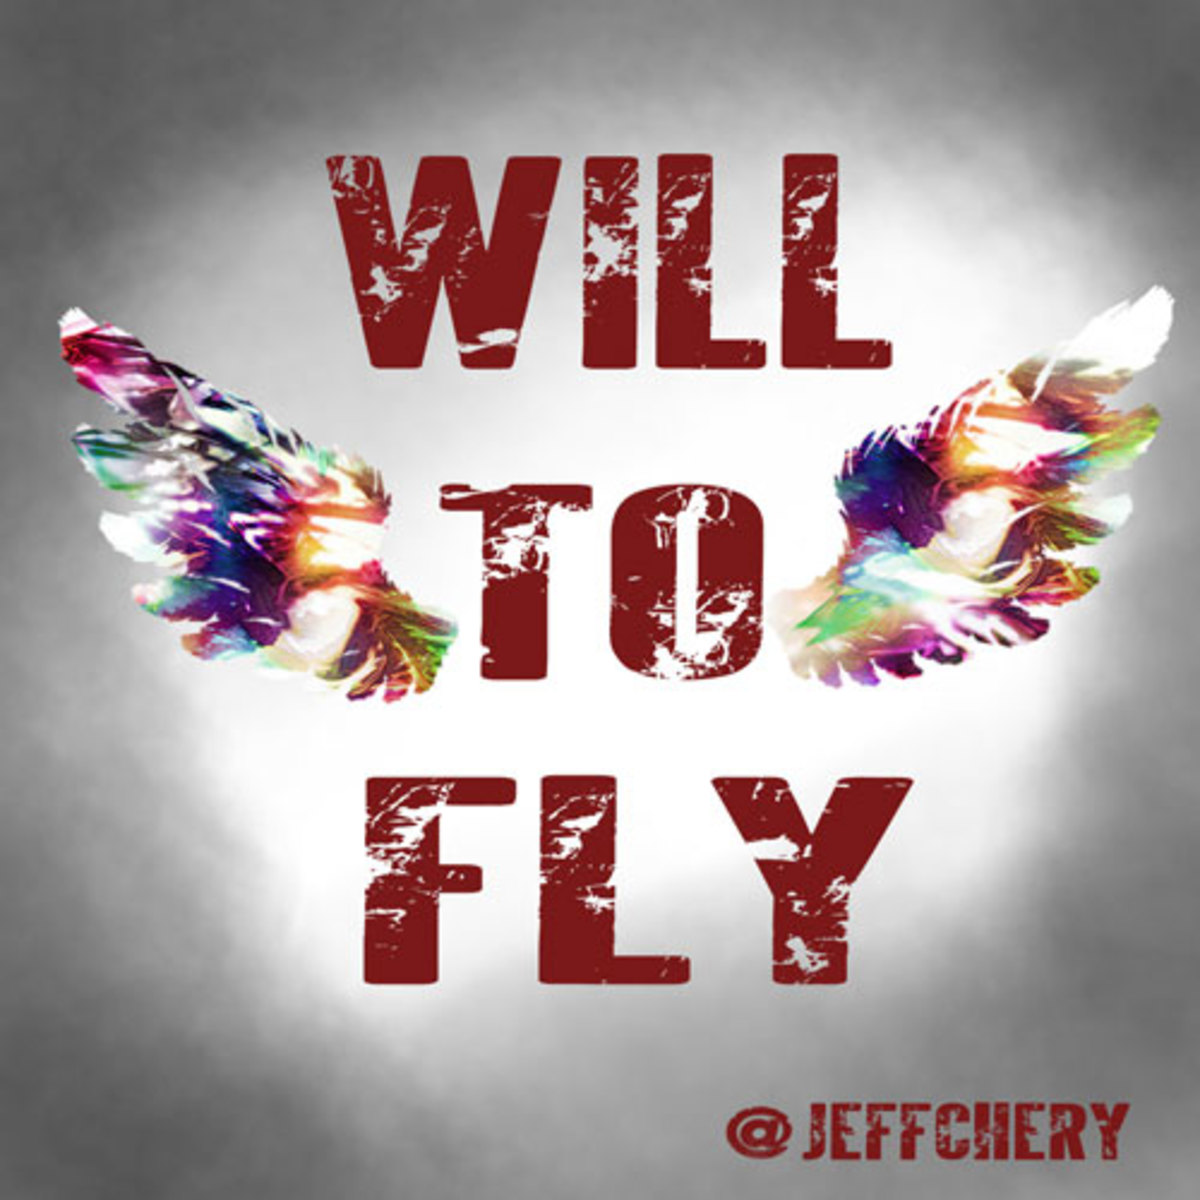 jeffchery-willtofly.jpg